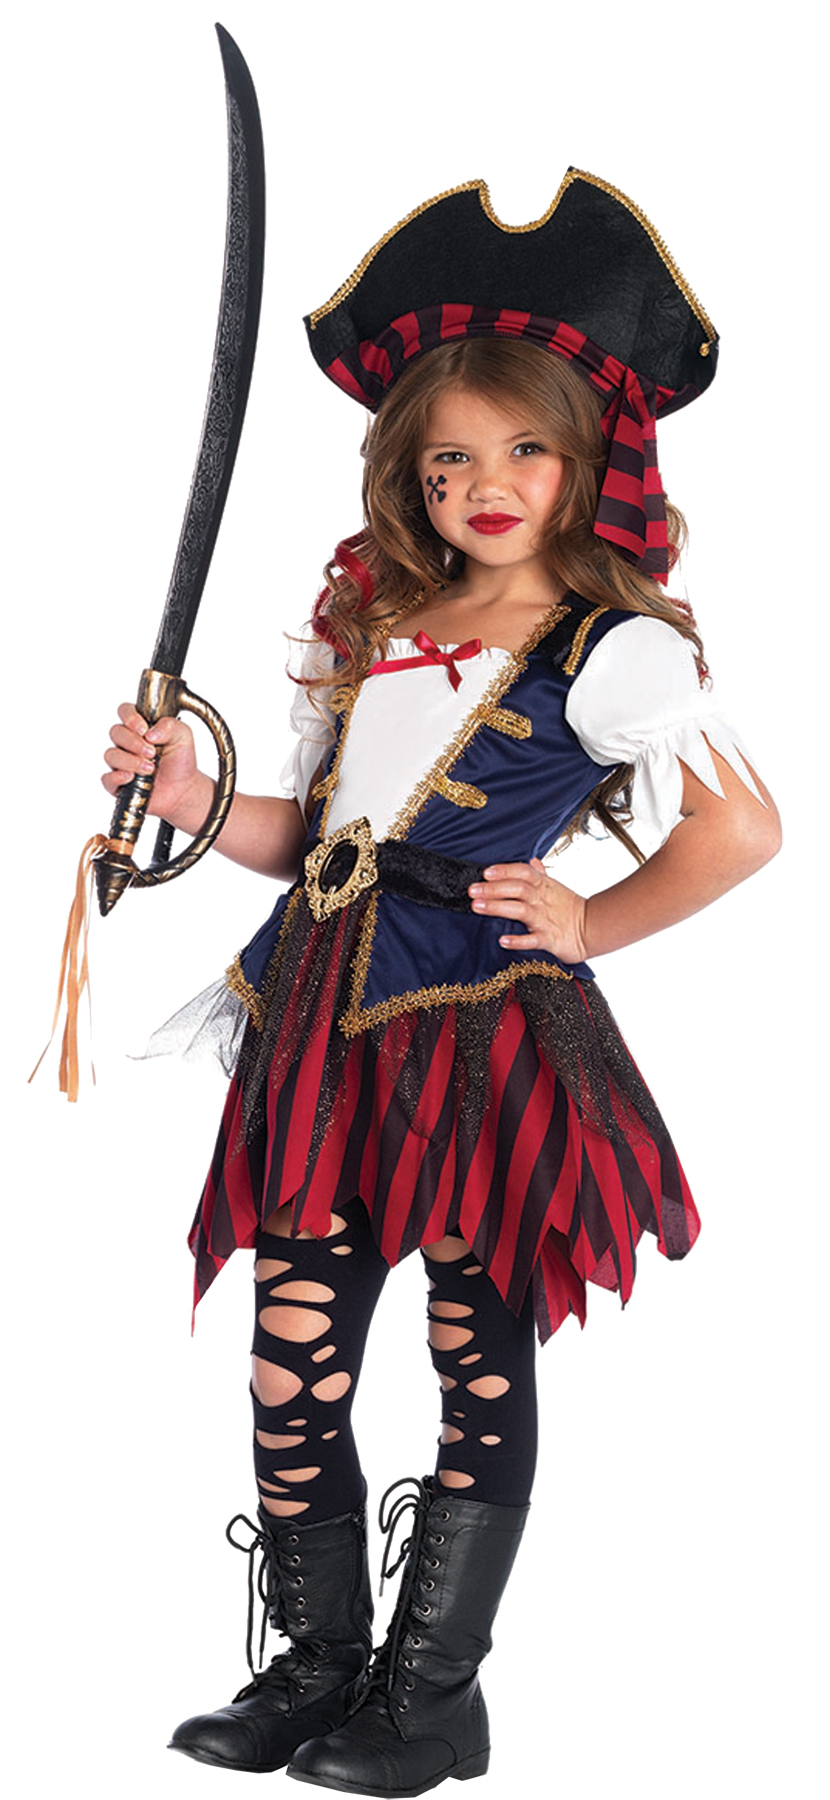 Girl's Pirate Caribbean Costume - CostumePub.com